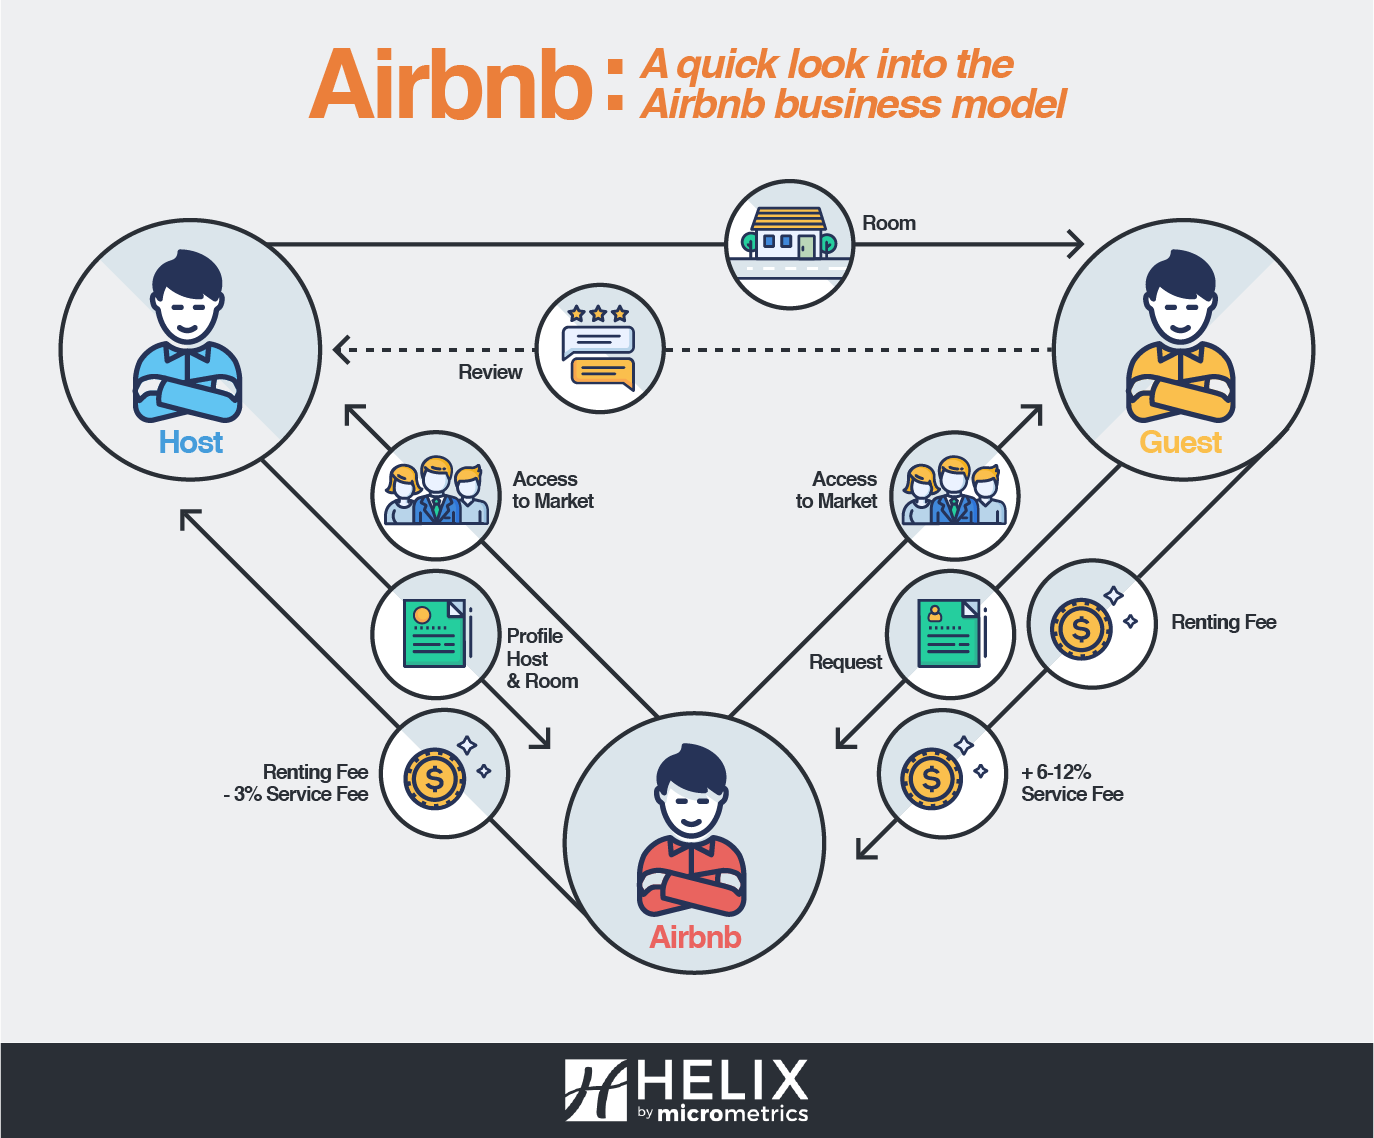 Airbnb VS Hotels : The Fight for the Modern Day Traveler